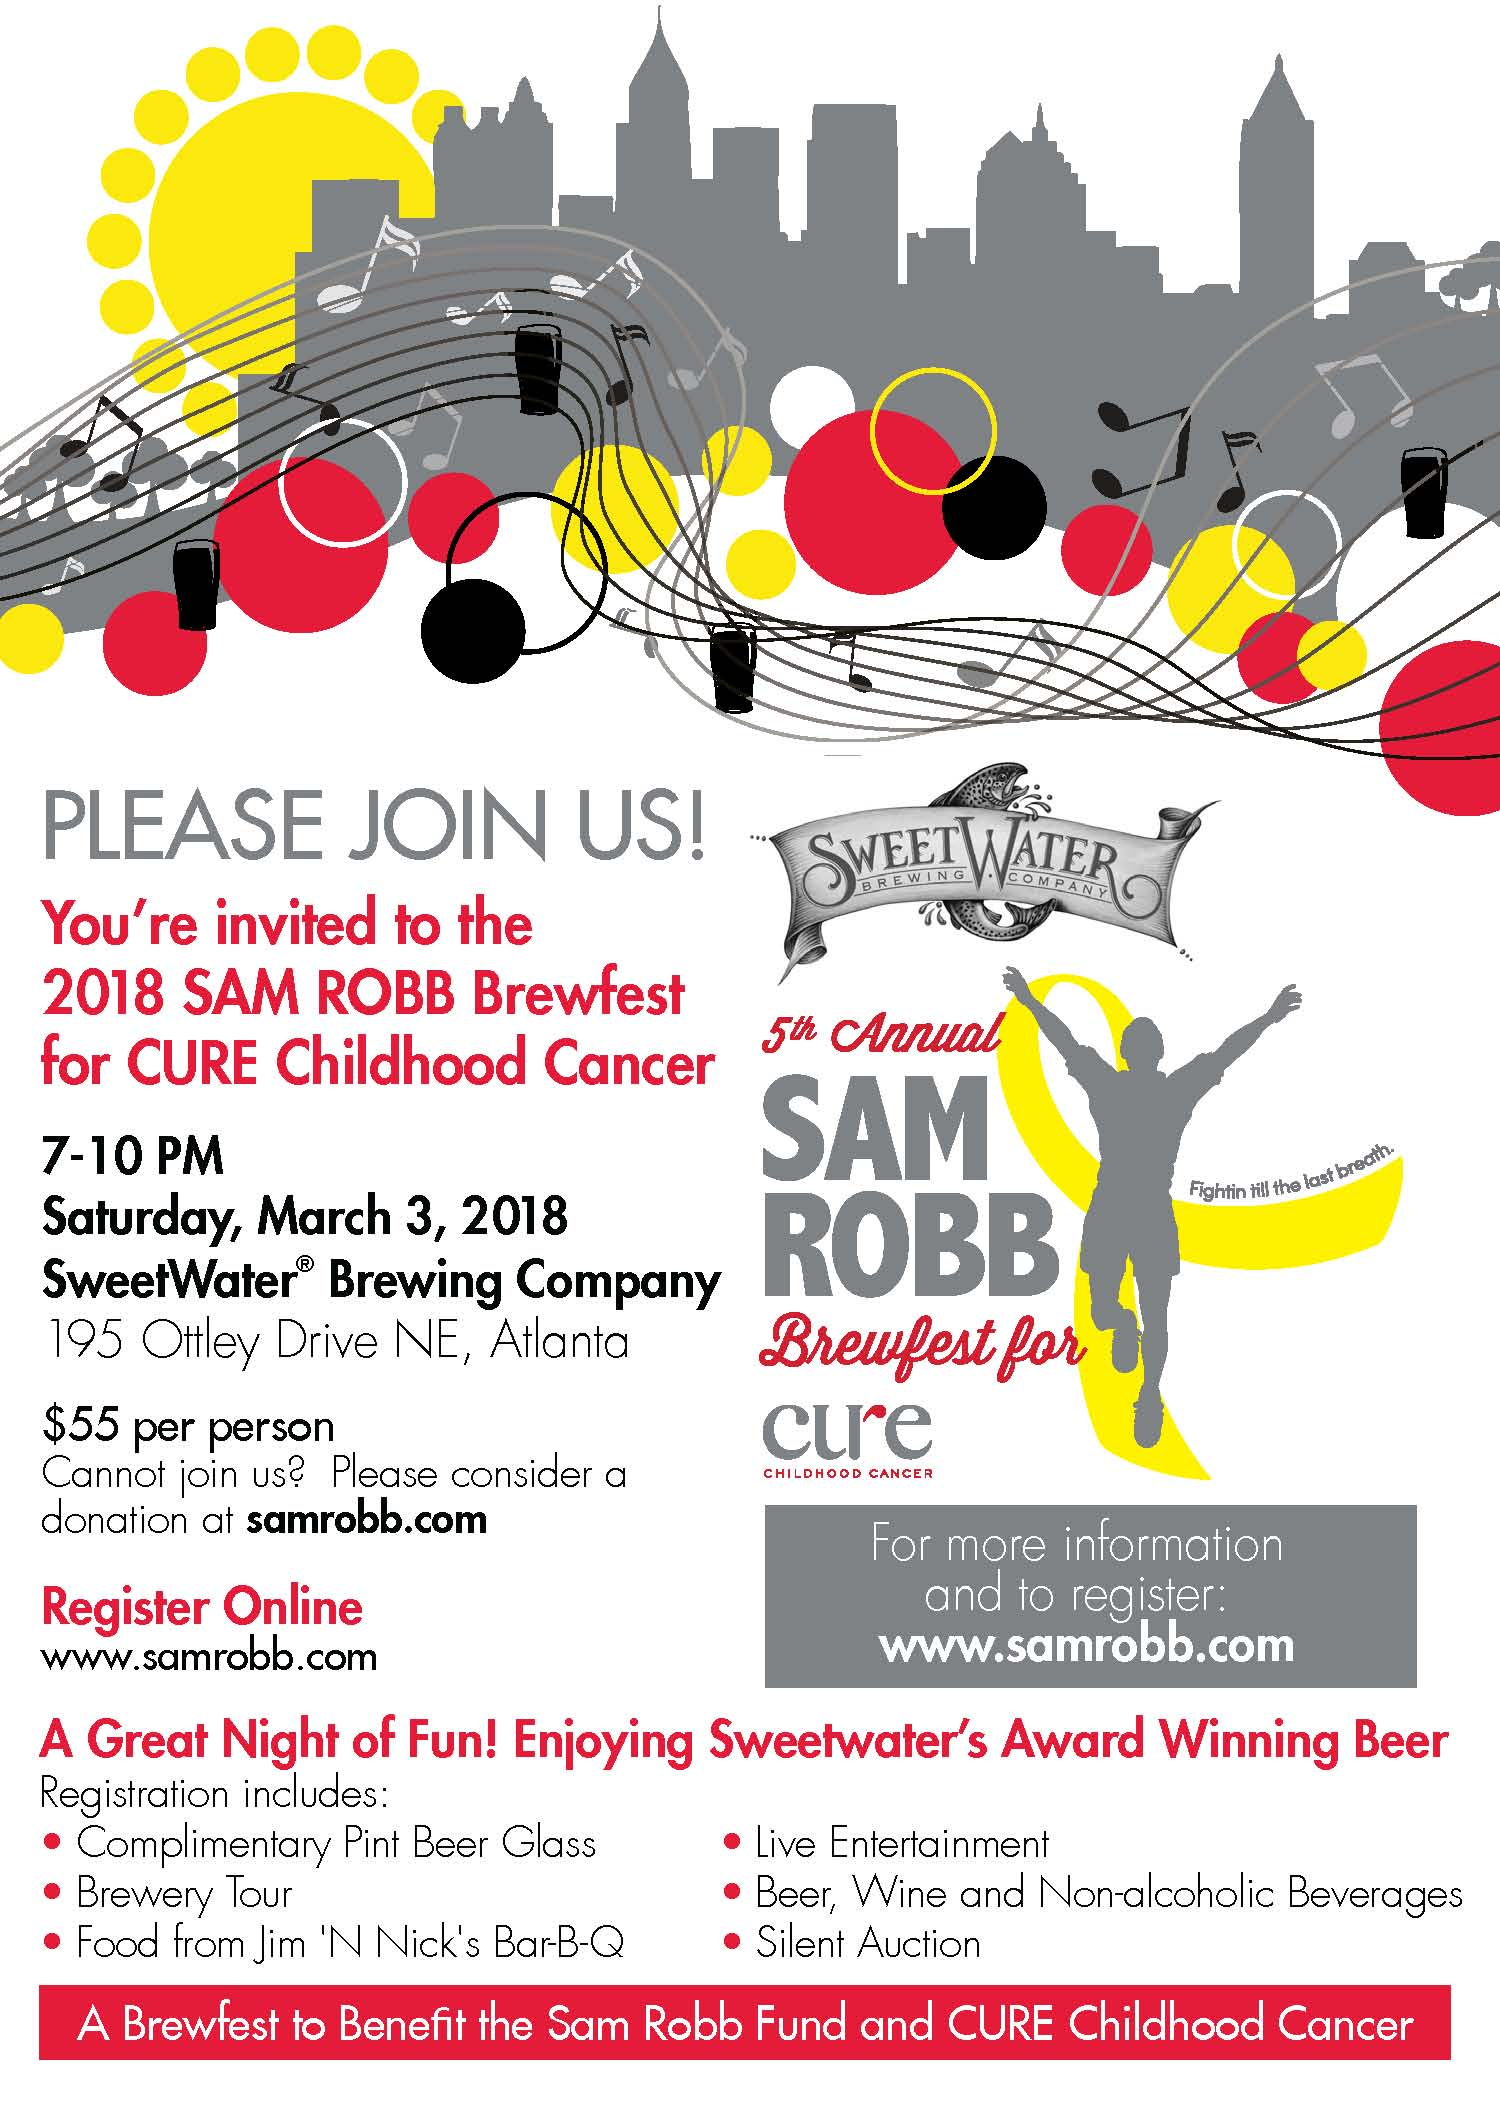 2018 Sam Robb Brewfest Invite